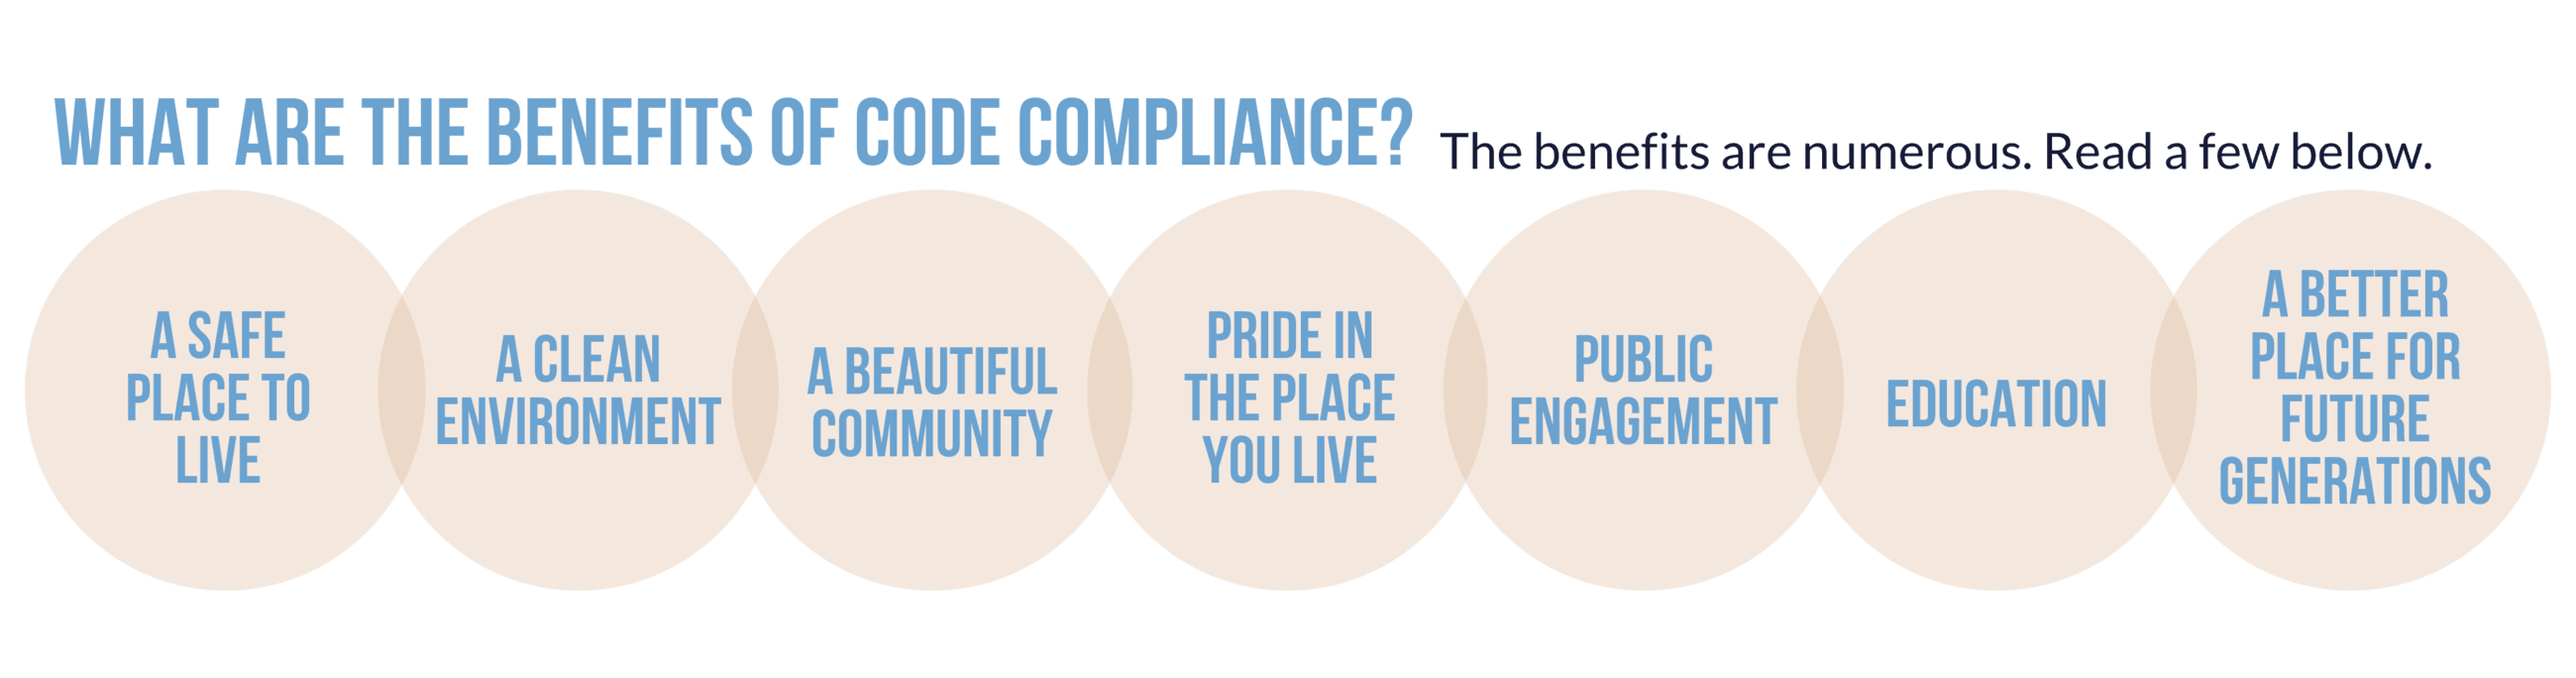 Benefits of Code Compliance